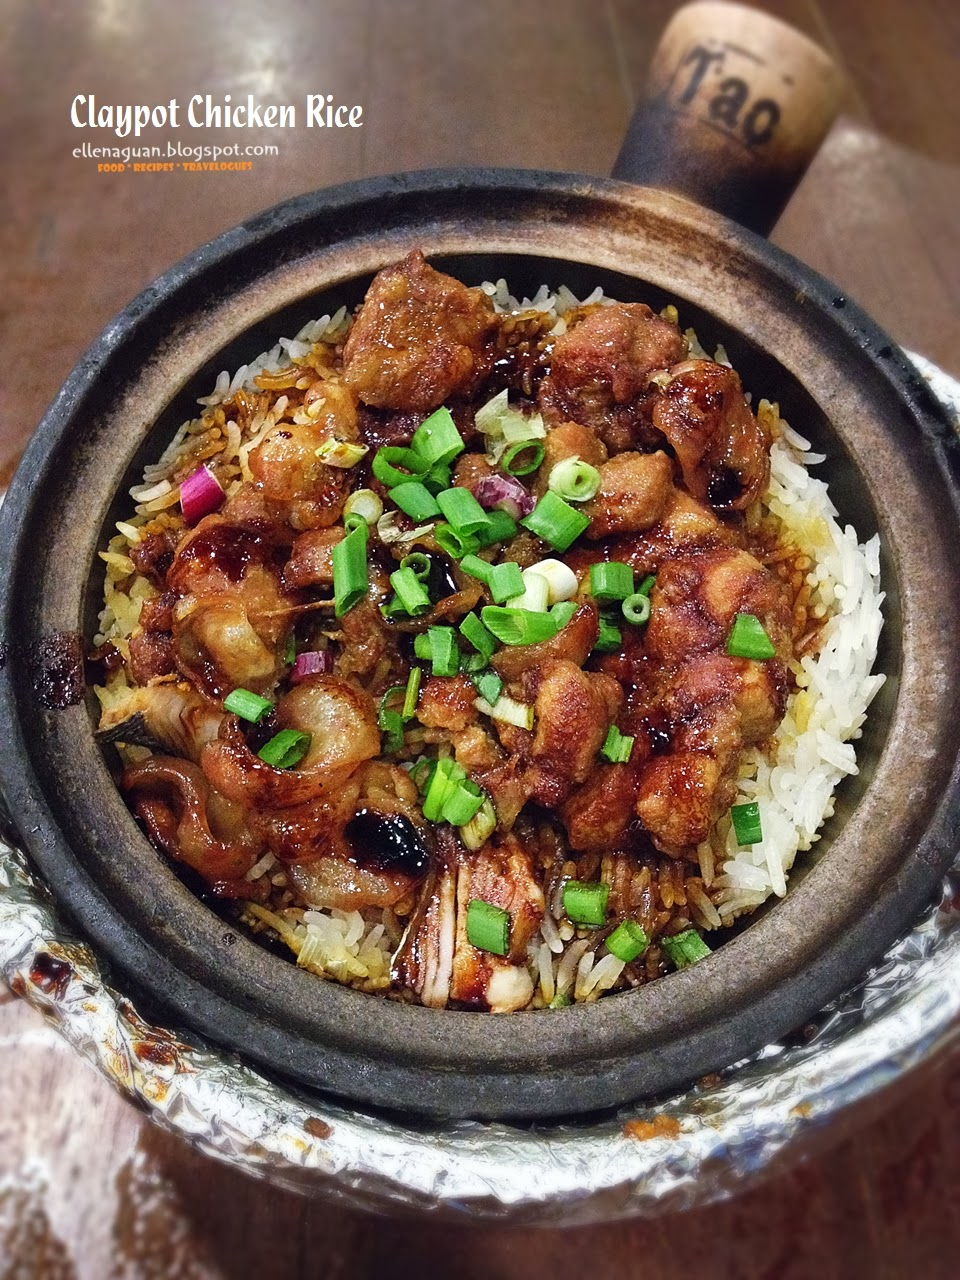 Cuisine paradise singapore food blog recipes reviews and travel claypot chicken rice sg500 per serving forumfinder Images